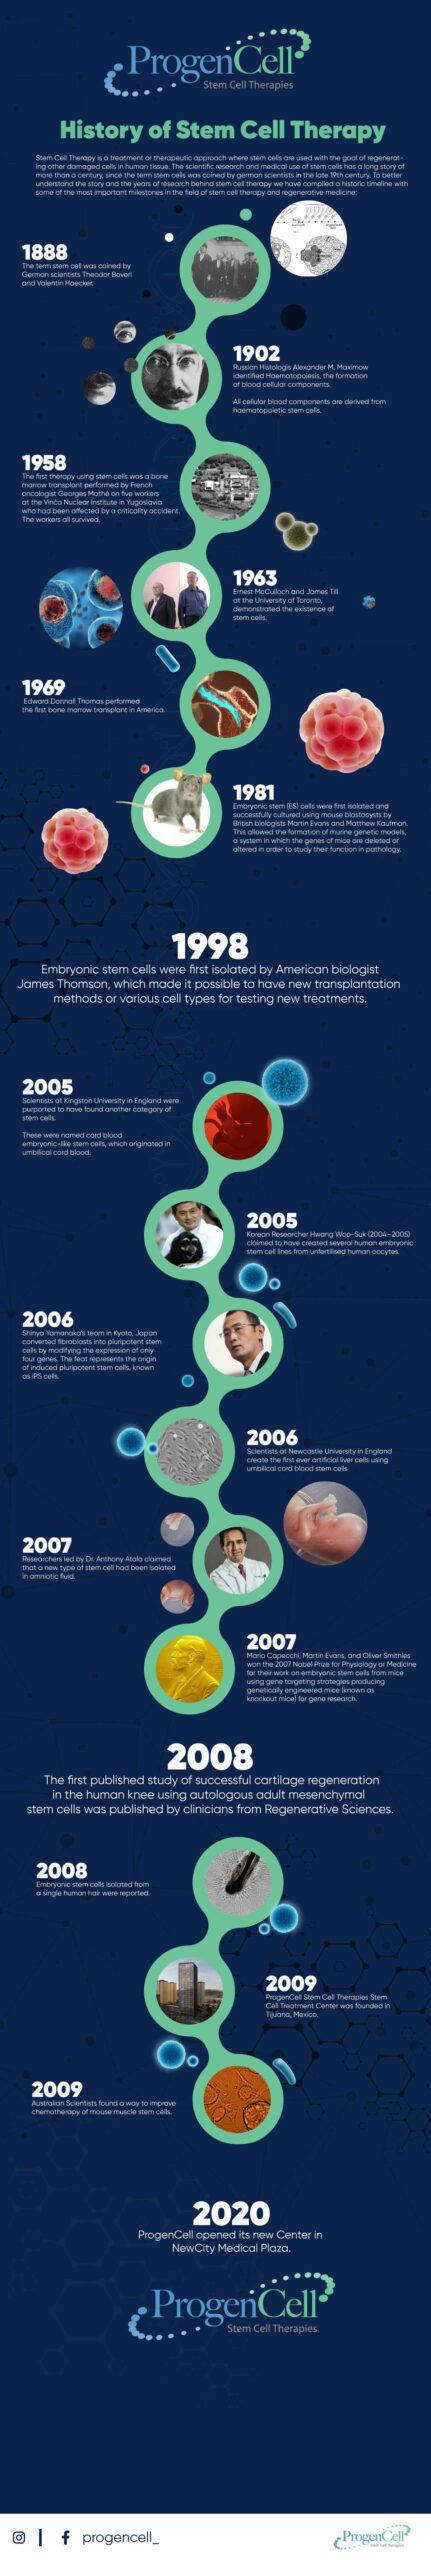 History of Stem cell Therapy